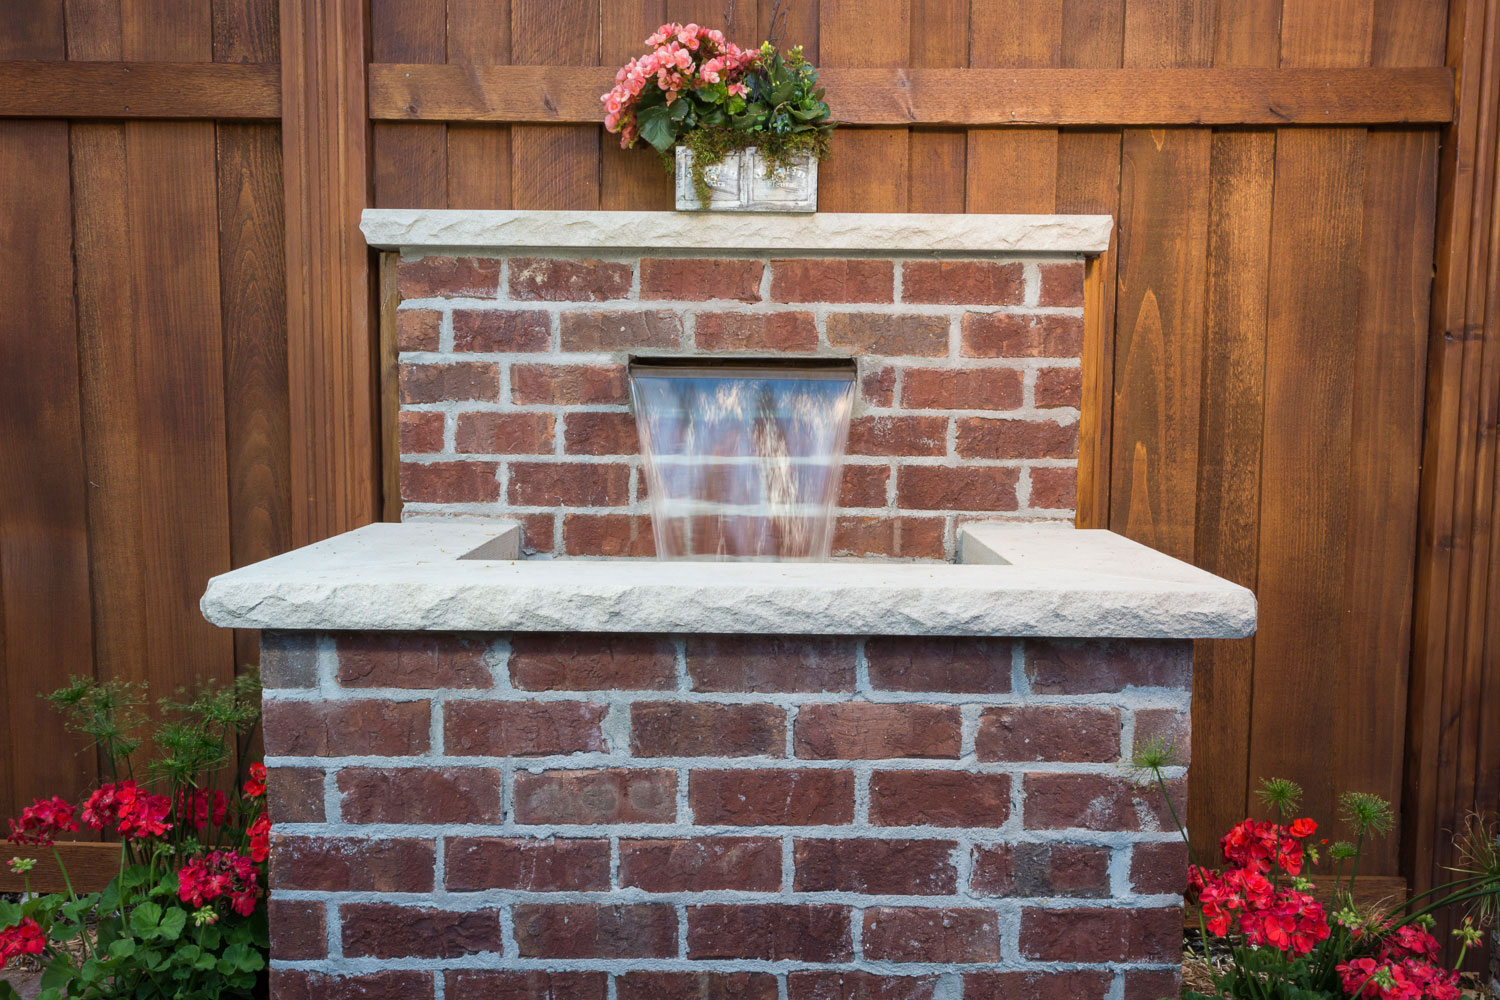 French Quarter-inspired backyard water fall feature design